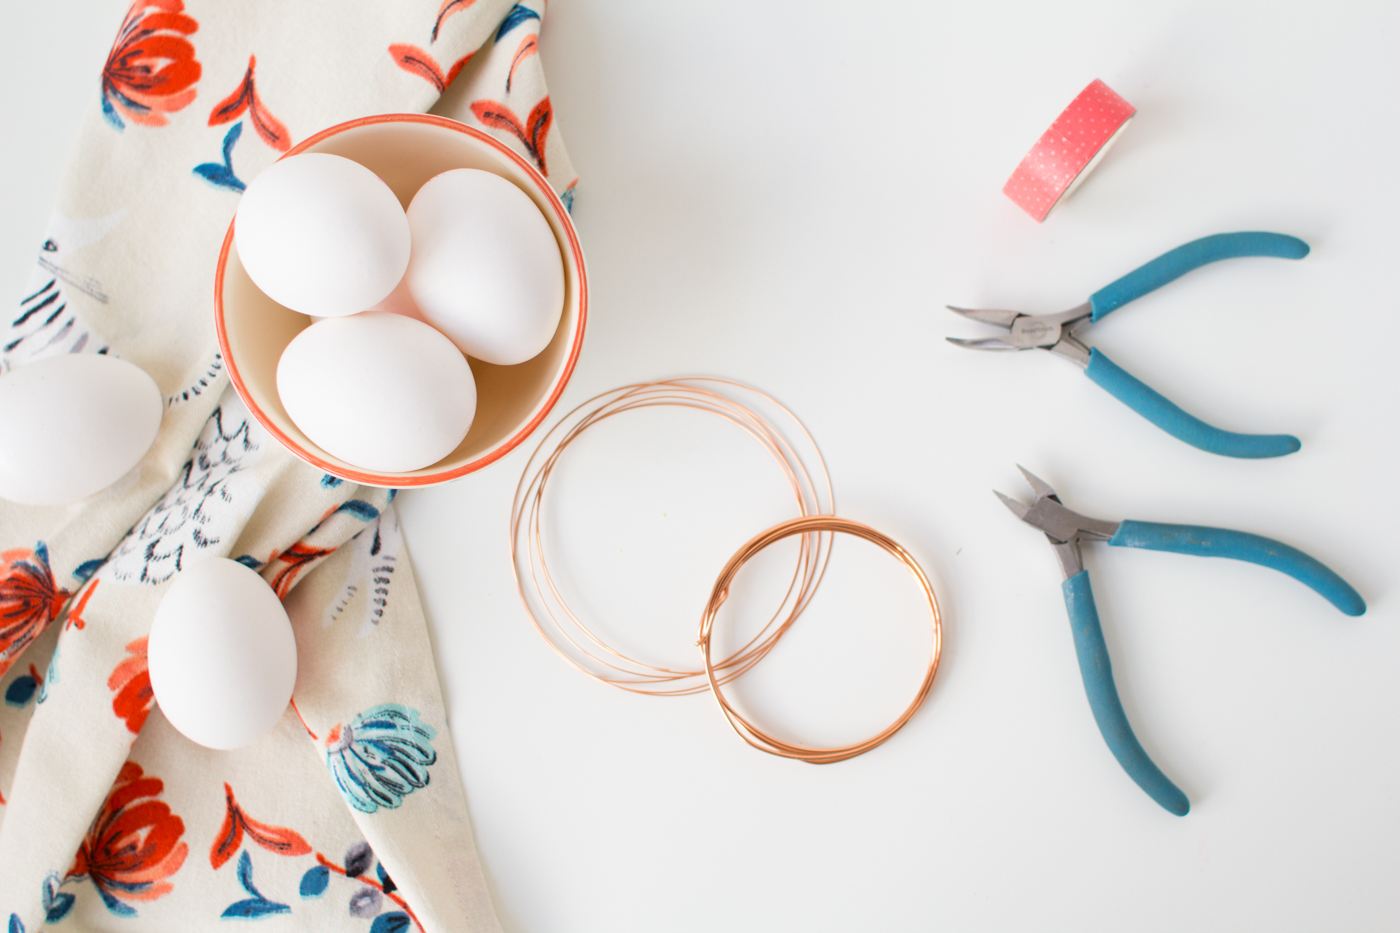 DIY Copper Wire Easter Egg Baskets | @fallfordiy Materials